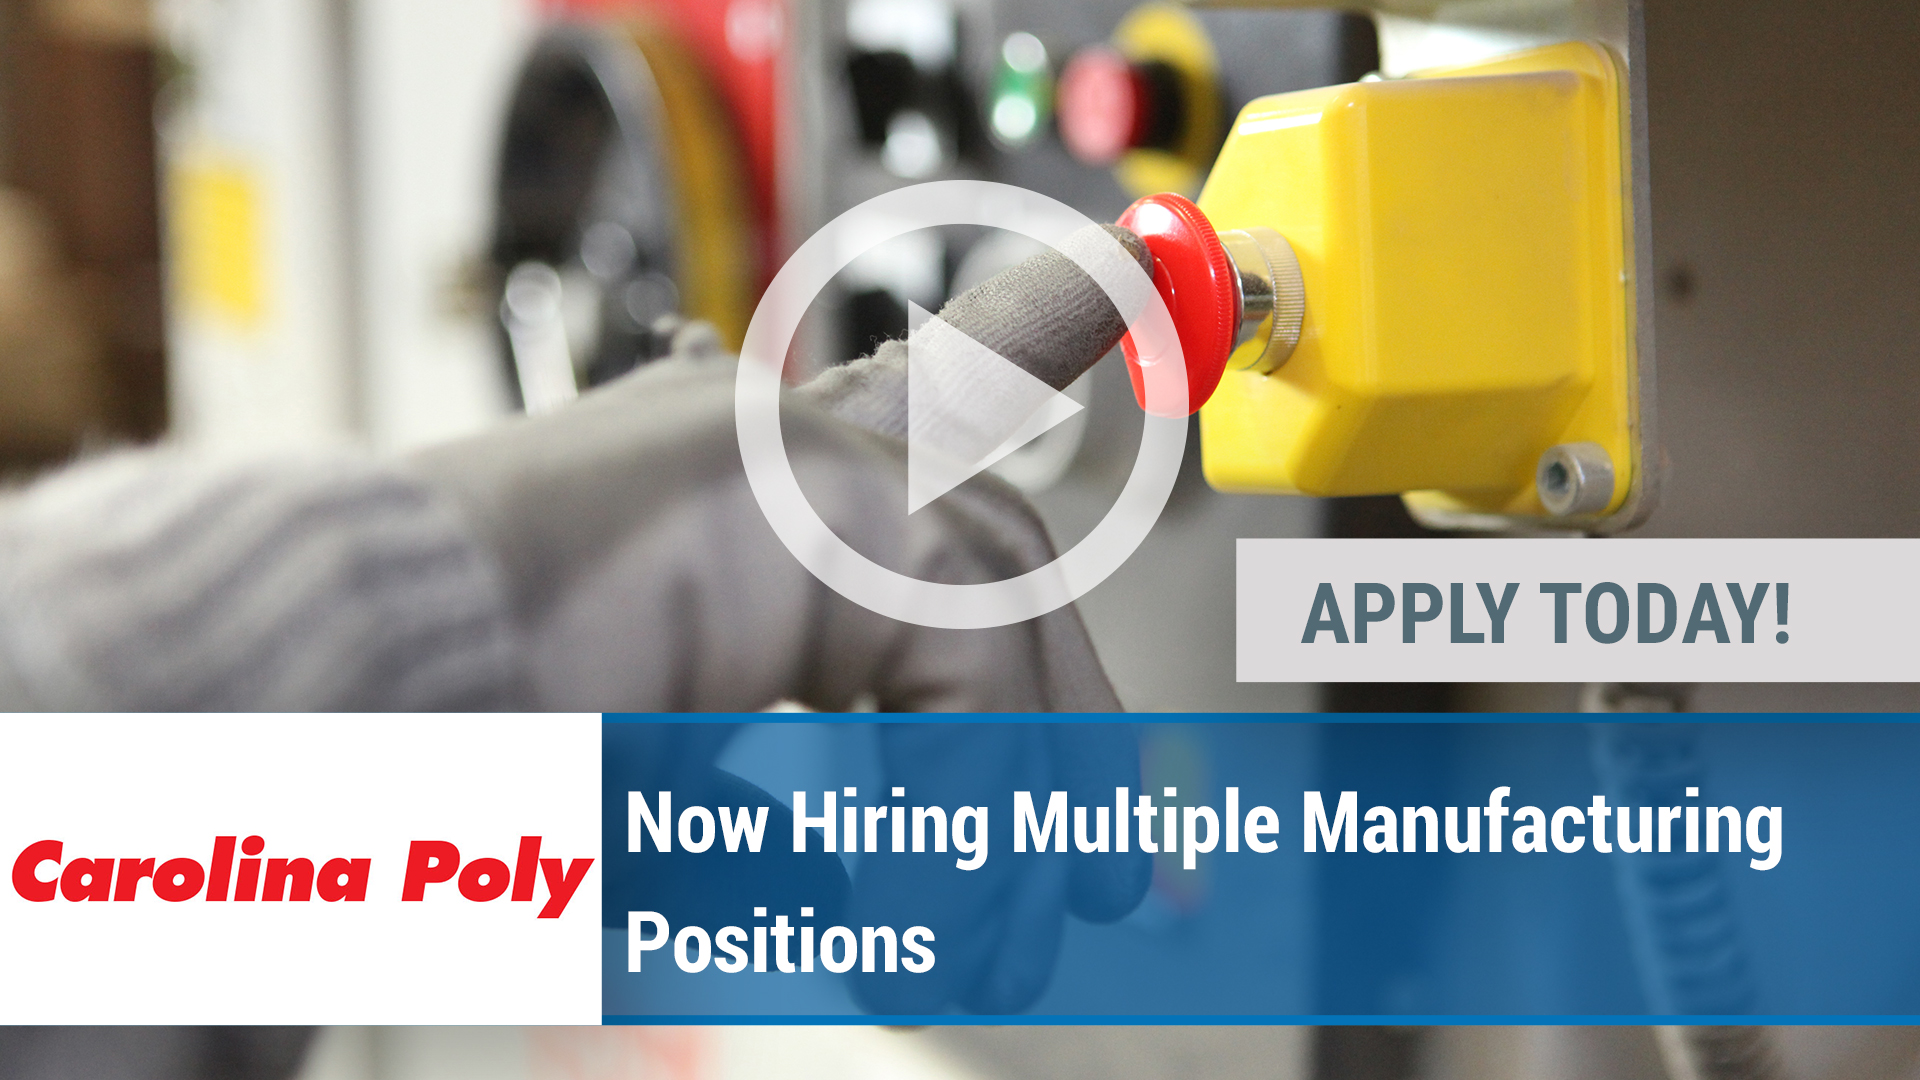 Watch our careers video for available job opening Now Hiring Multiple Manufacturing Positions in Chester, SC